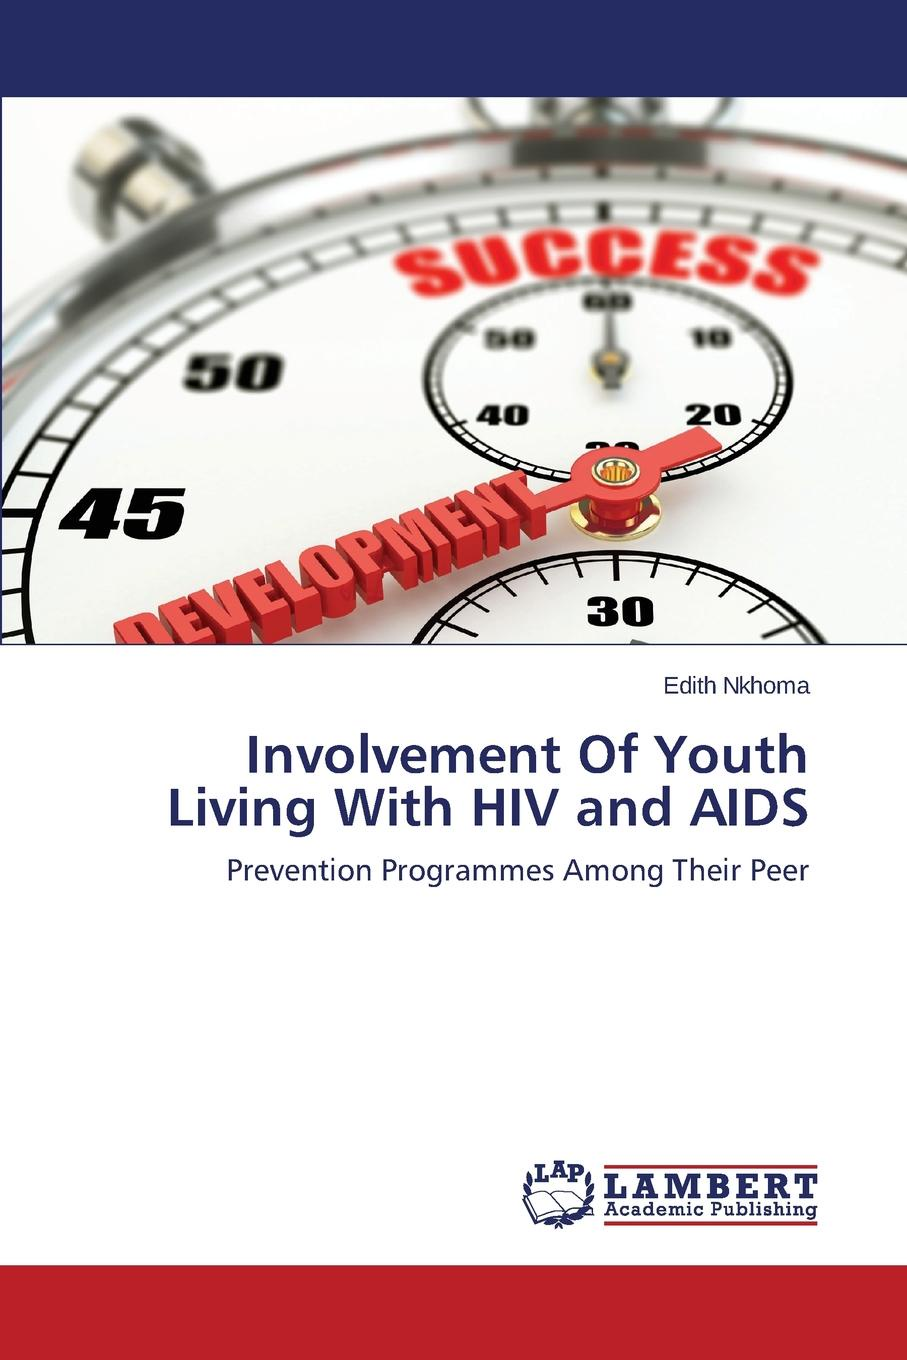 Nkhoma Edith Involvement Of Youth Living With HIV and AIDS недорго, оригинальная цена